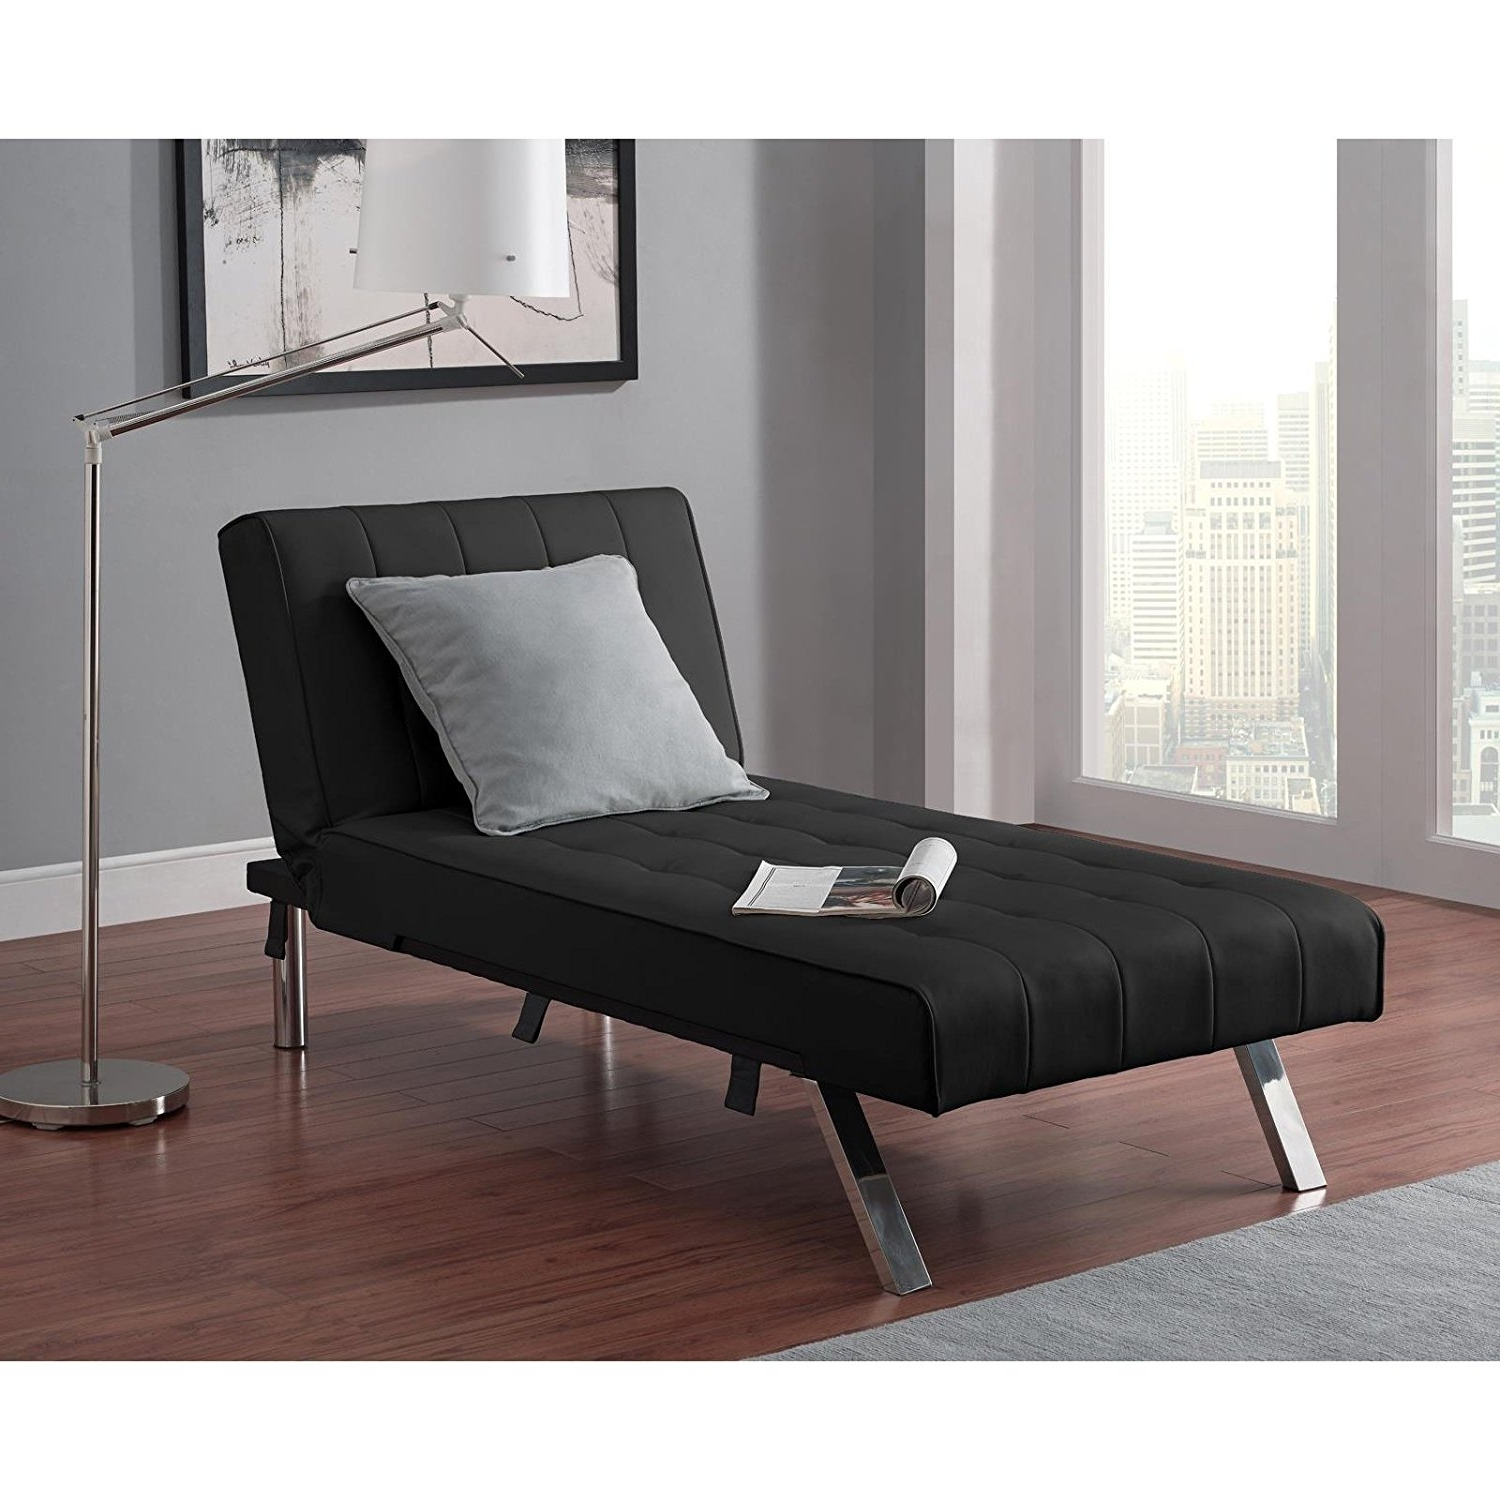 Widely Used Amazon: Emily Futon With Chaise Lounger Super Bonus Set Black In Emily Futon Chaise Loungers (View 15 of 15)